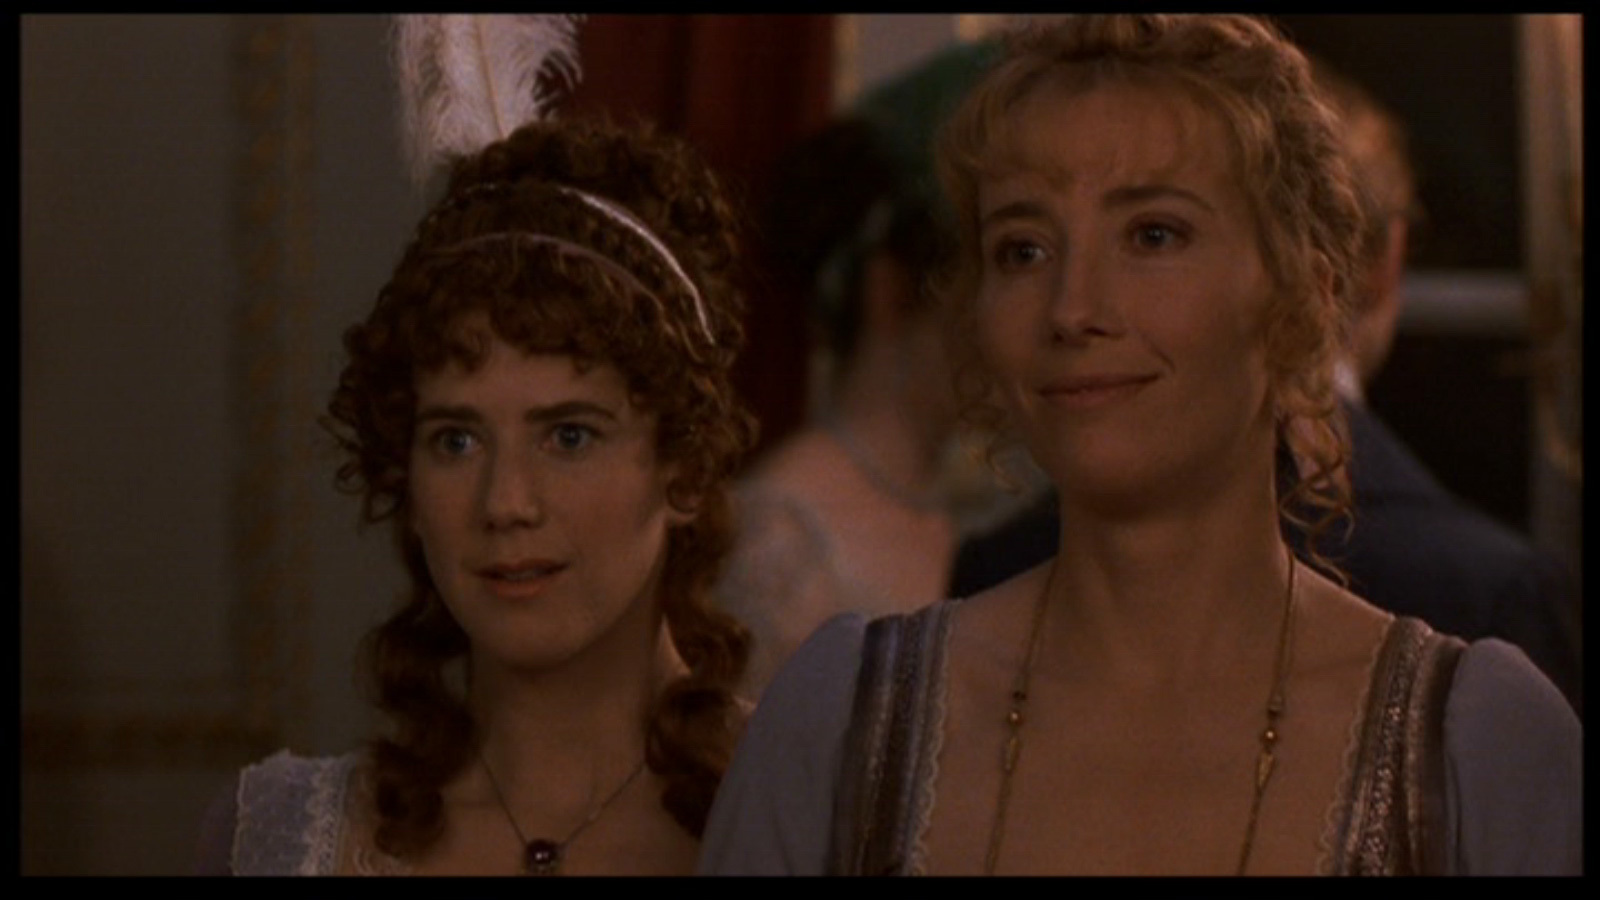 a review on sense and sensibility directed by ang lee Directed by ang lee with emma thompson reviews 204 user sense and sensibility (1995.